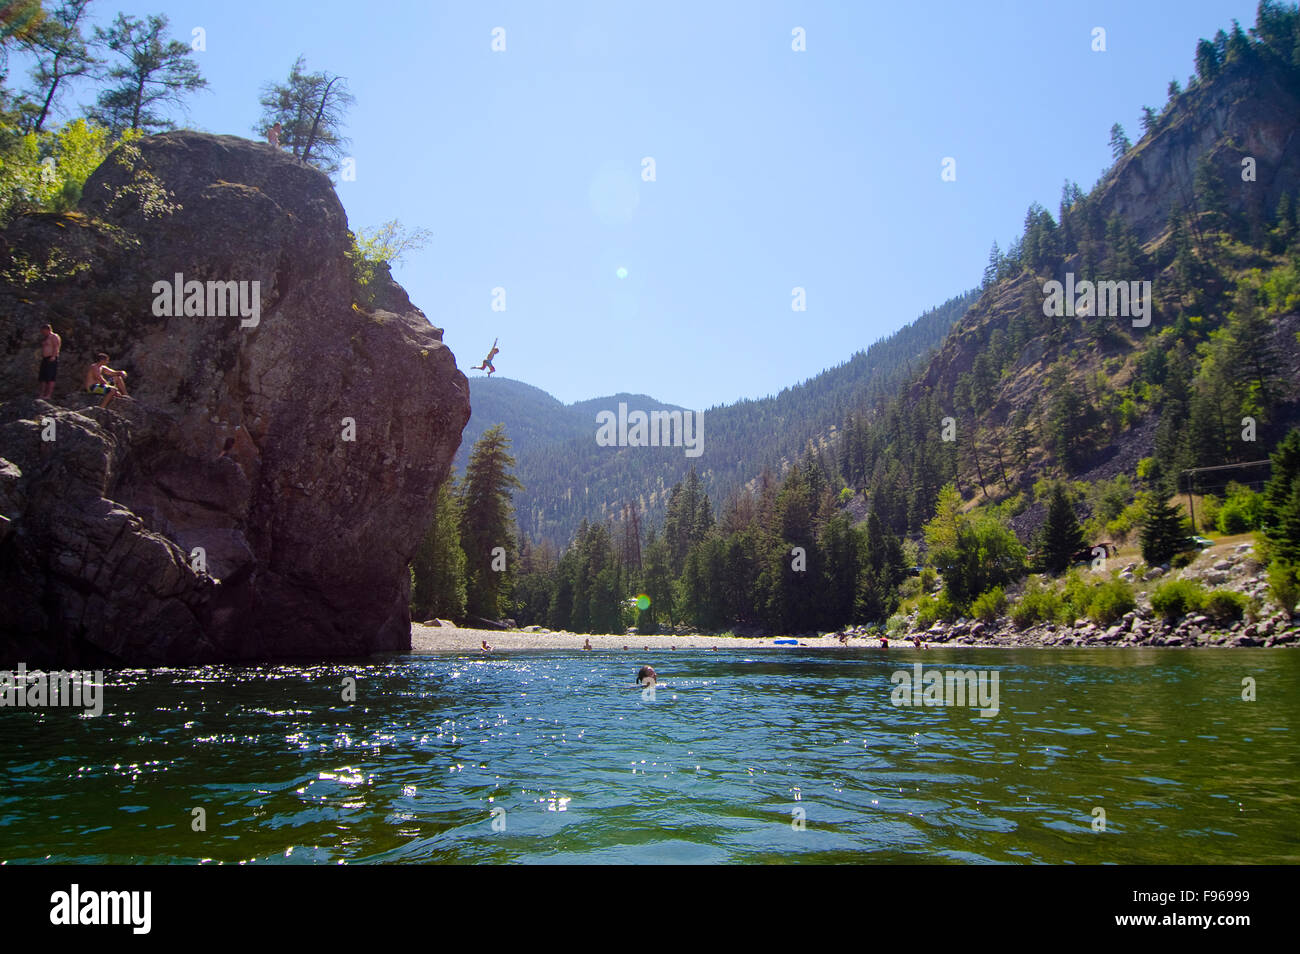 Jumping off Bromley Rock into the Similkameen River, Bromley Rock Provincial Park, near Princeton, British Columbia, - Stock Image